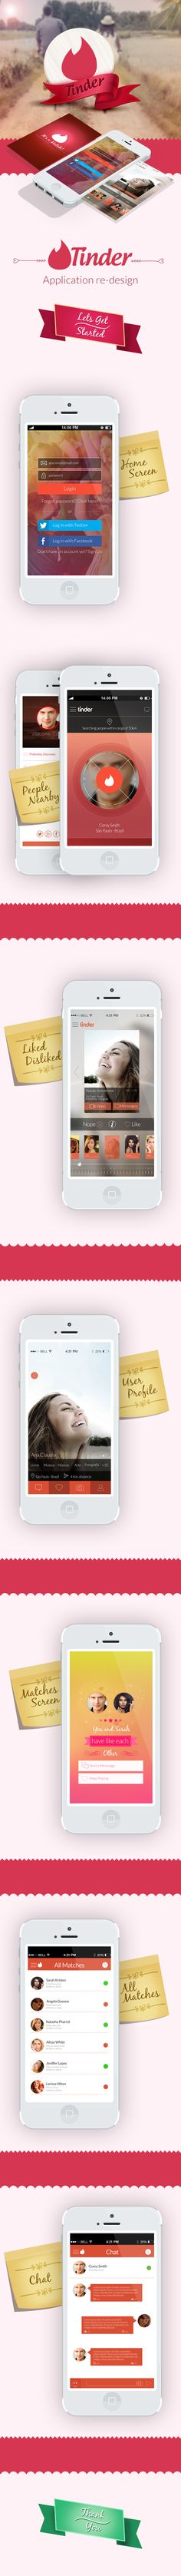 Tinder iOS and Android Concept Design